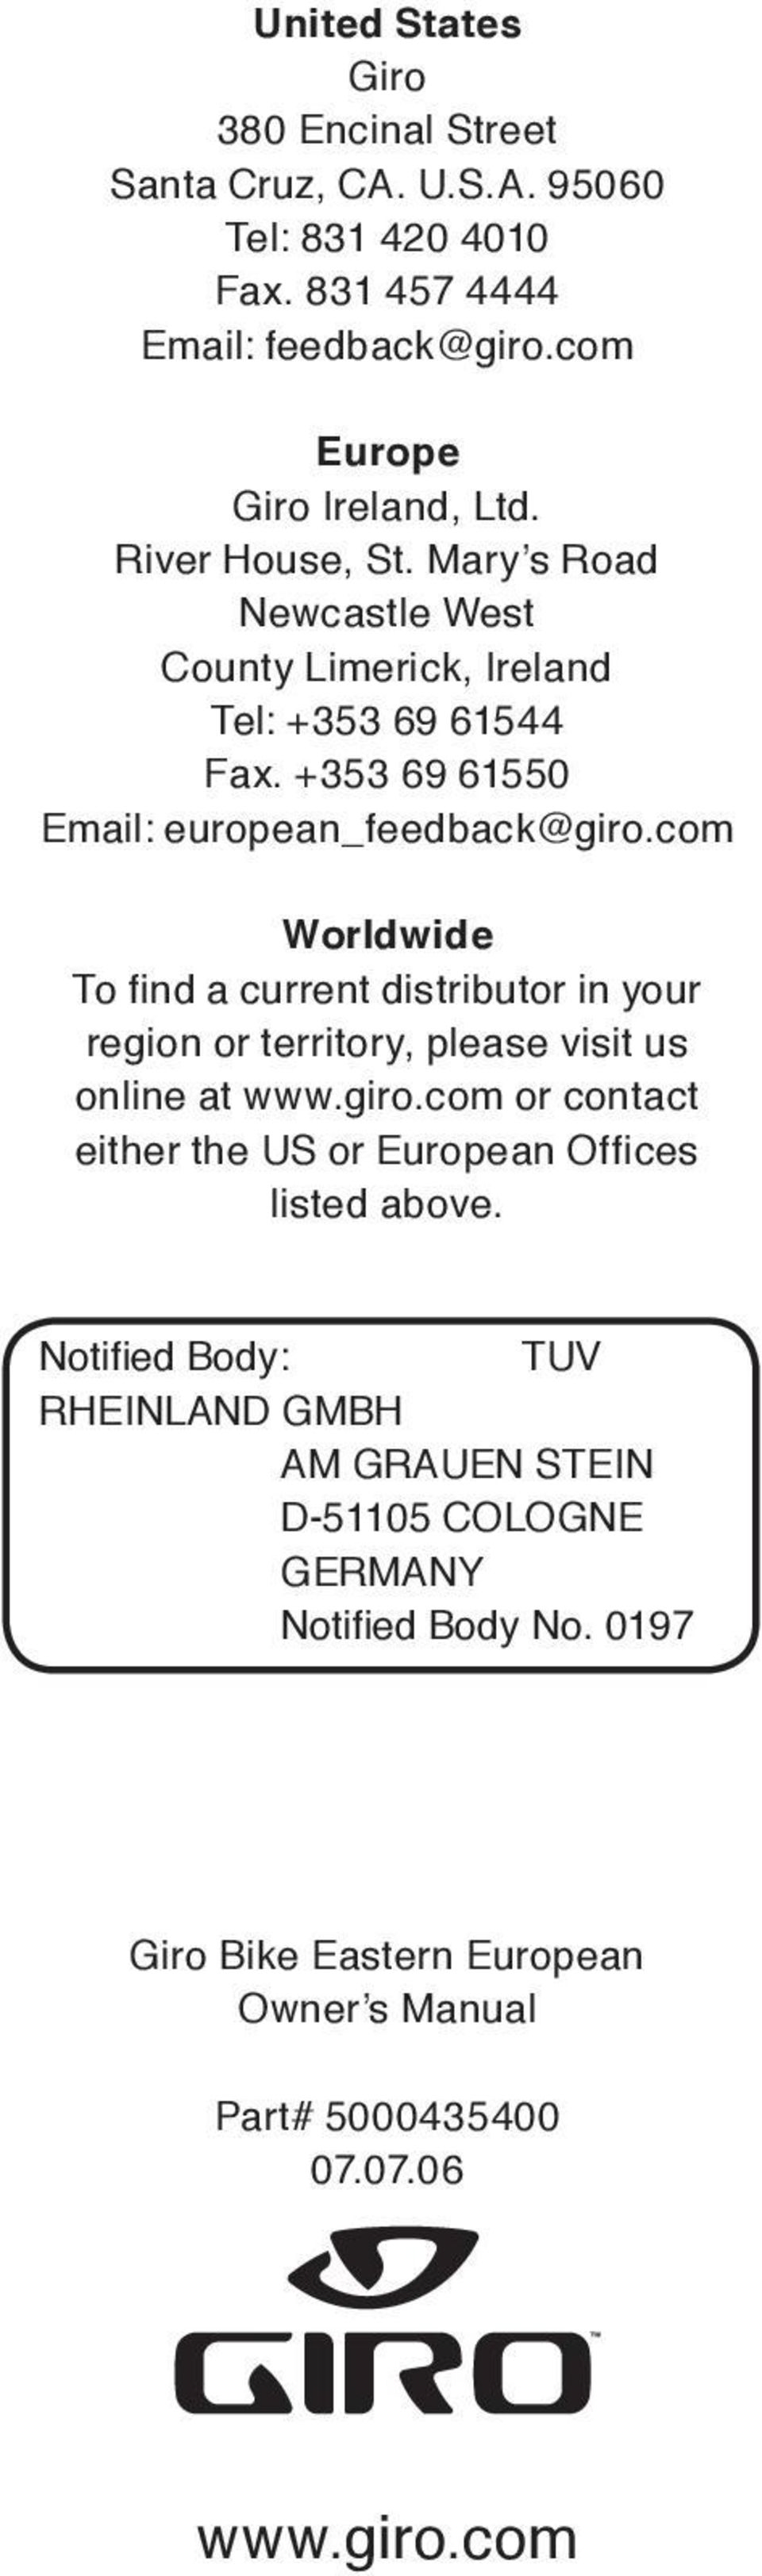 com Worldwide To find a current distributor in your region or territory, please visit us online at www.giro.